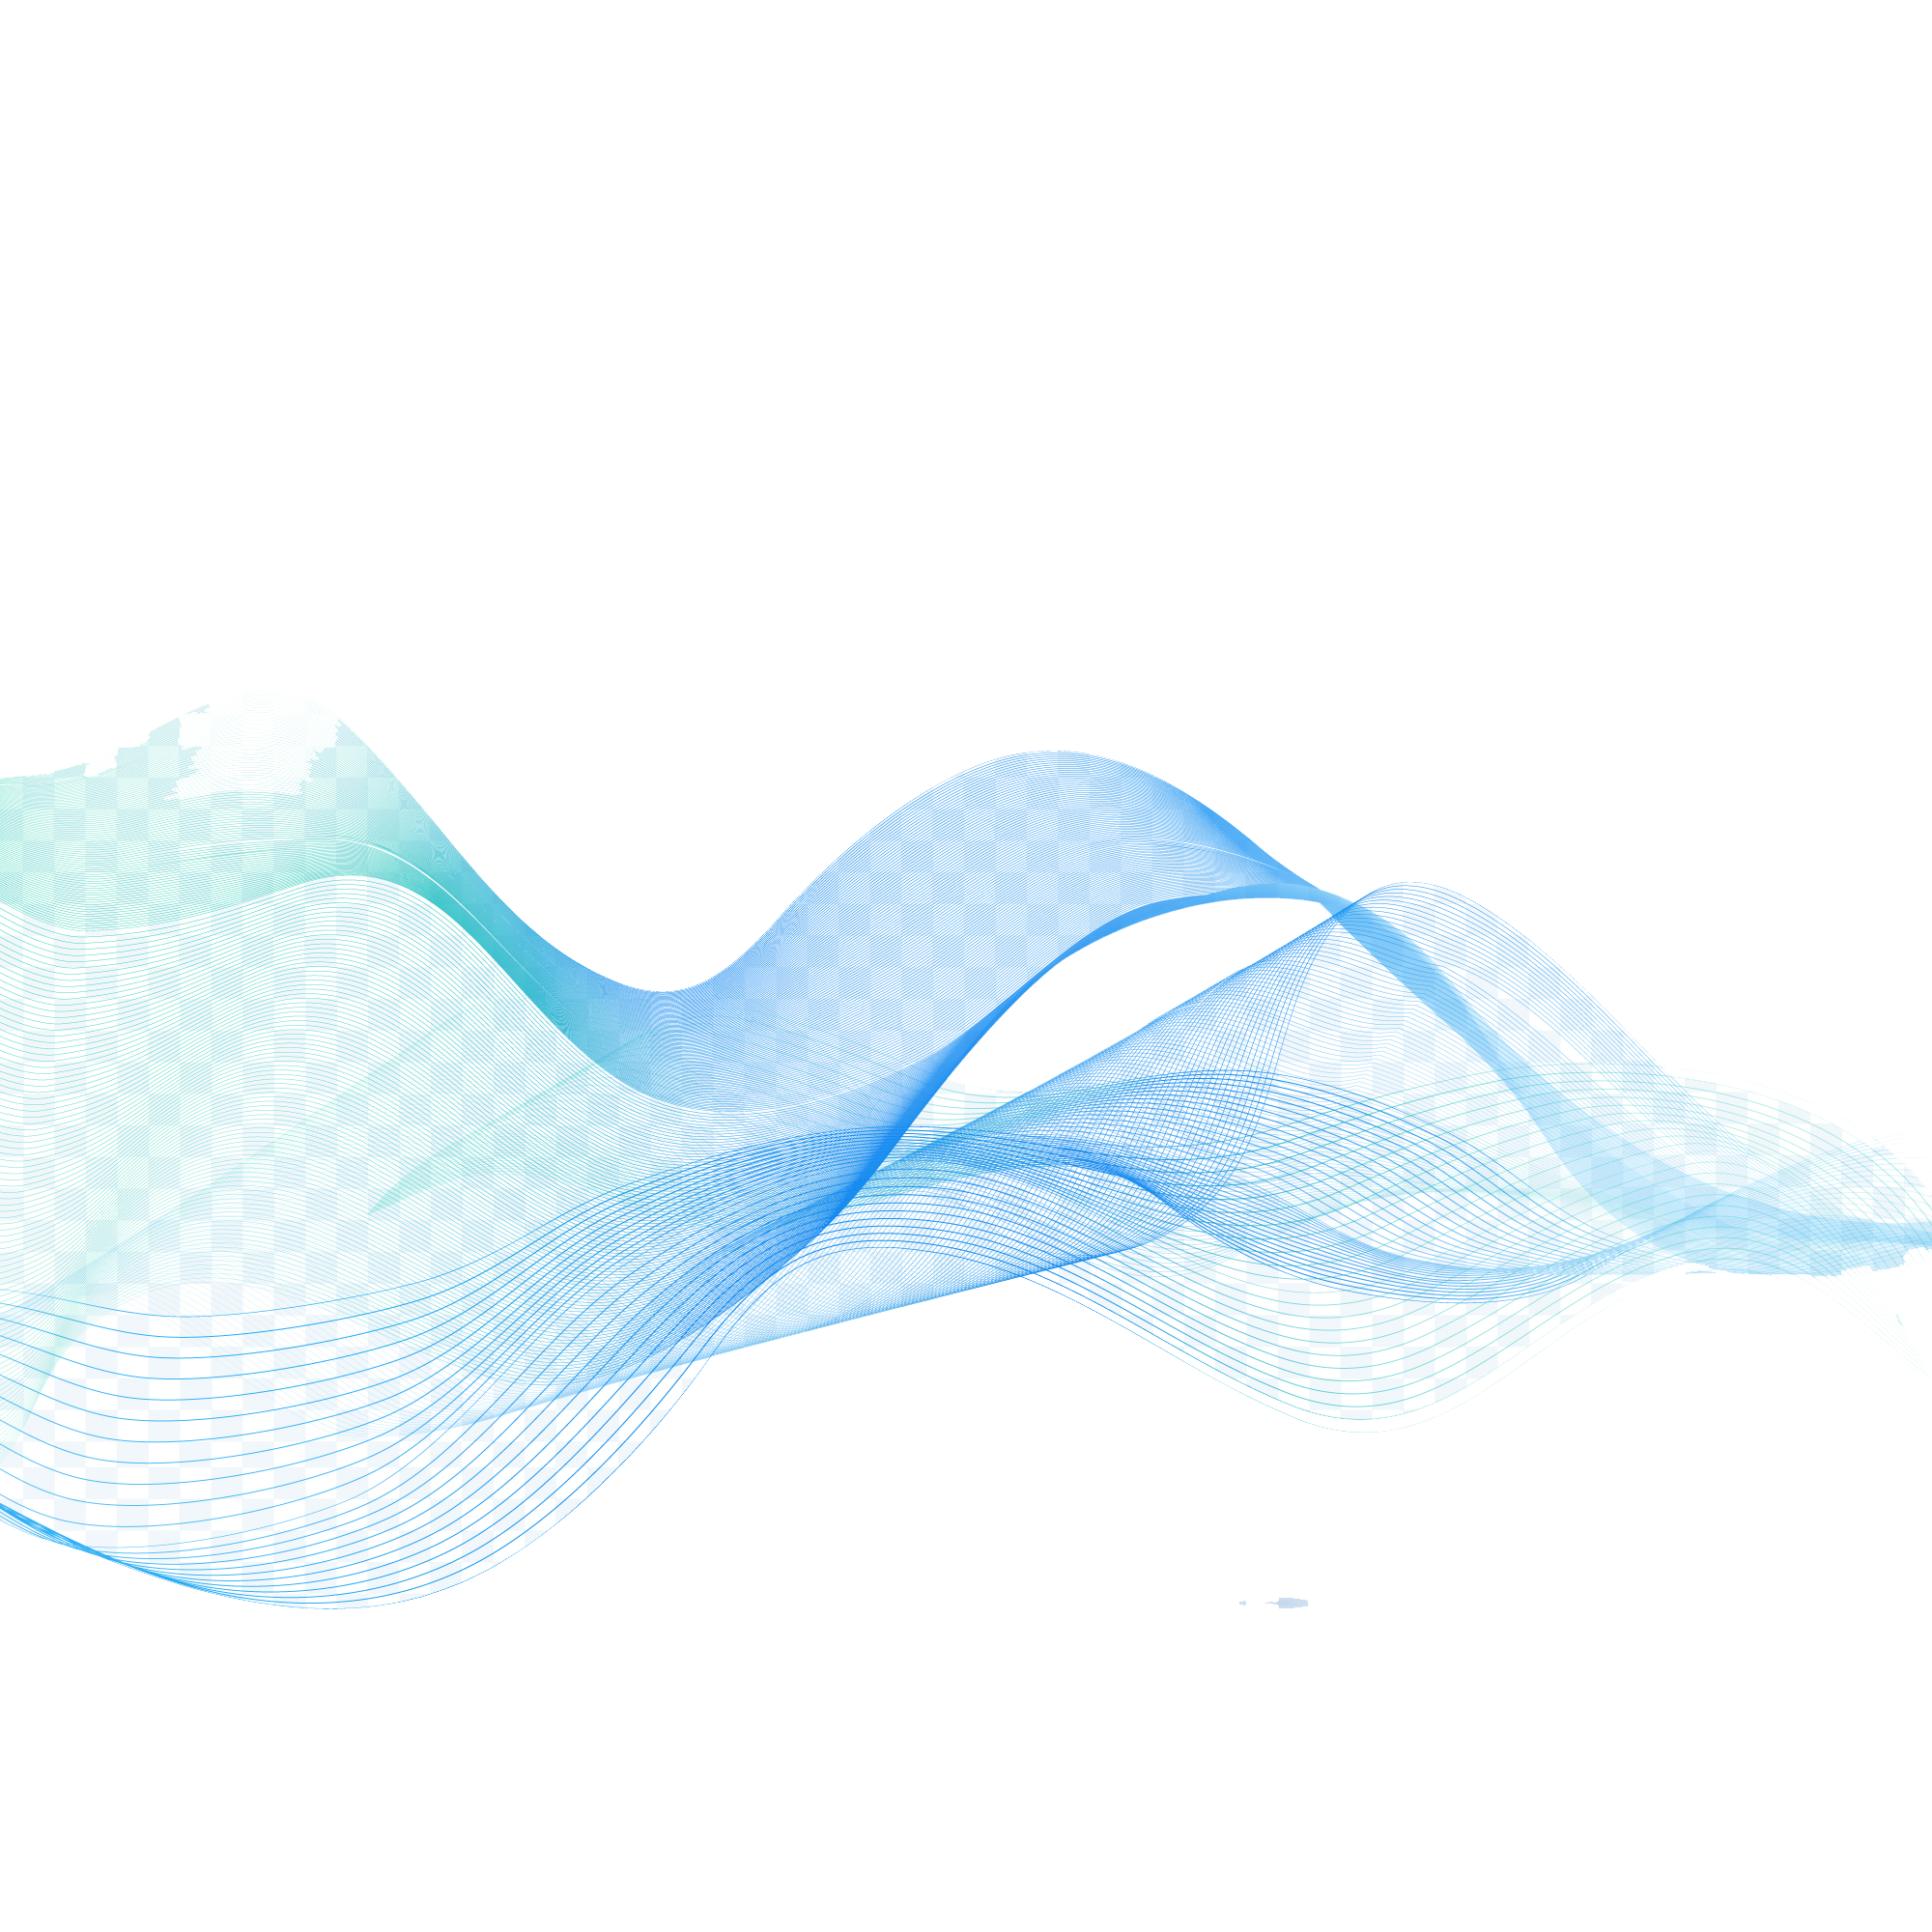 Waves clipart watercolor. Abstract png peoplepng com